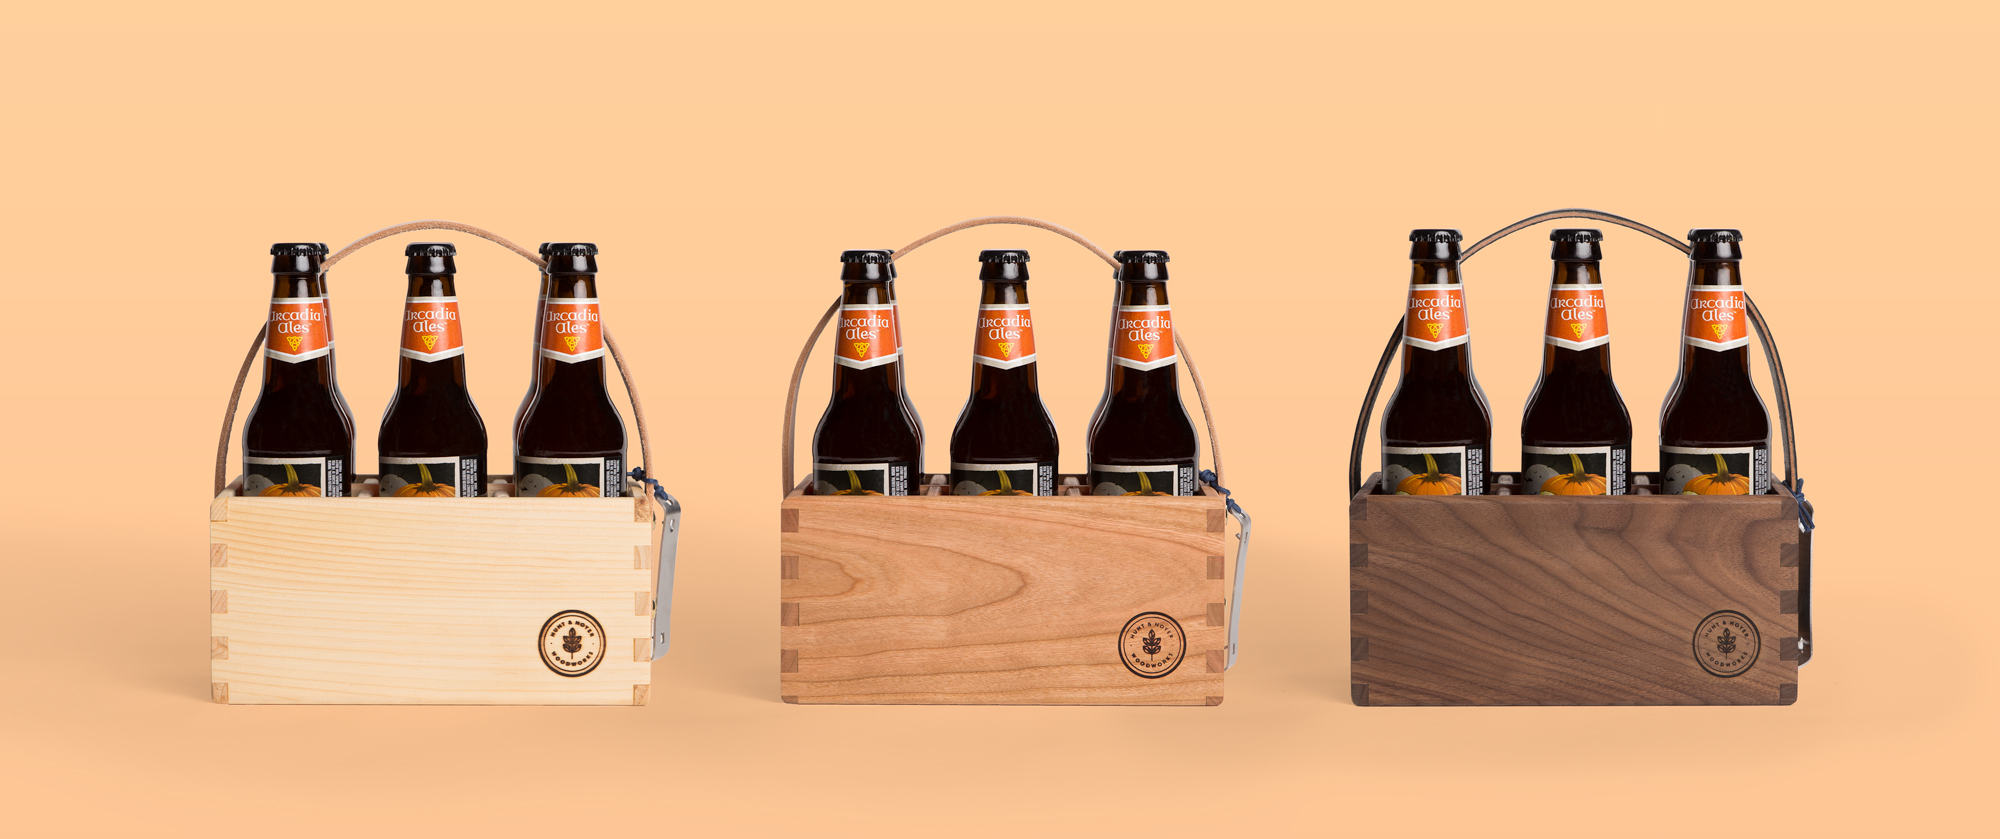 BeerCarrier-Group-2.jpg